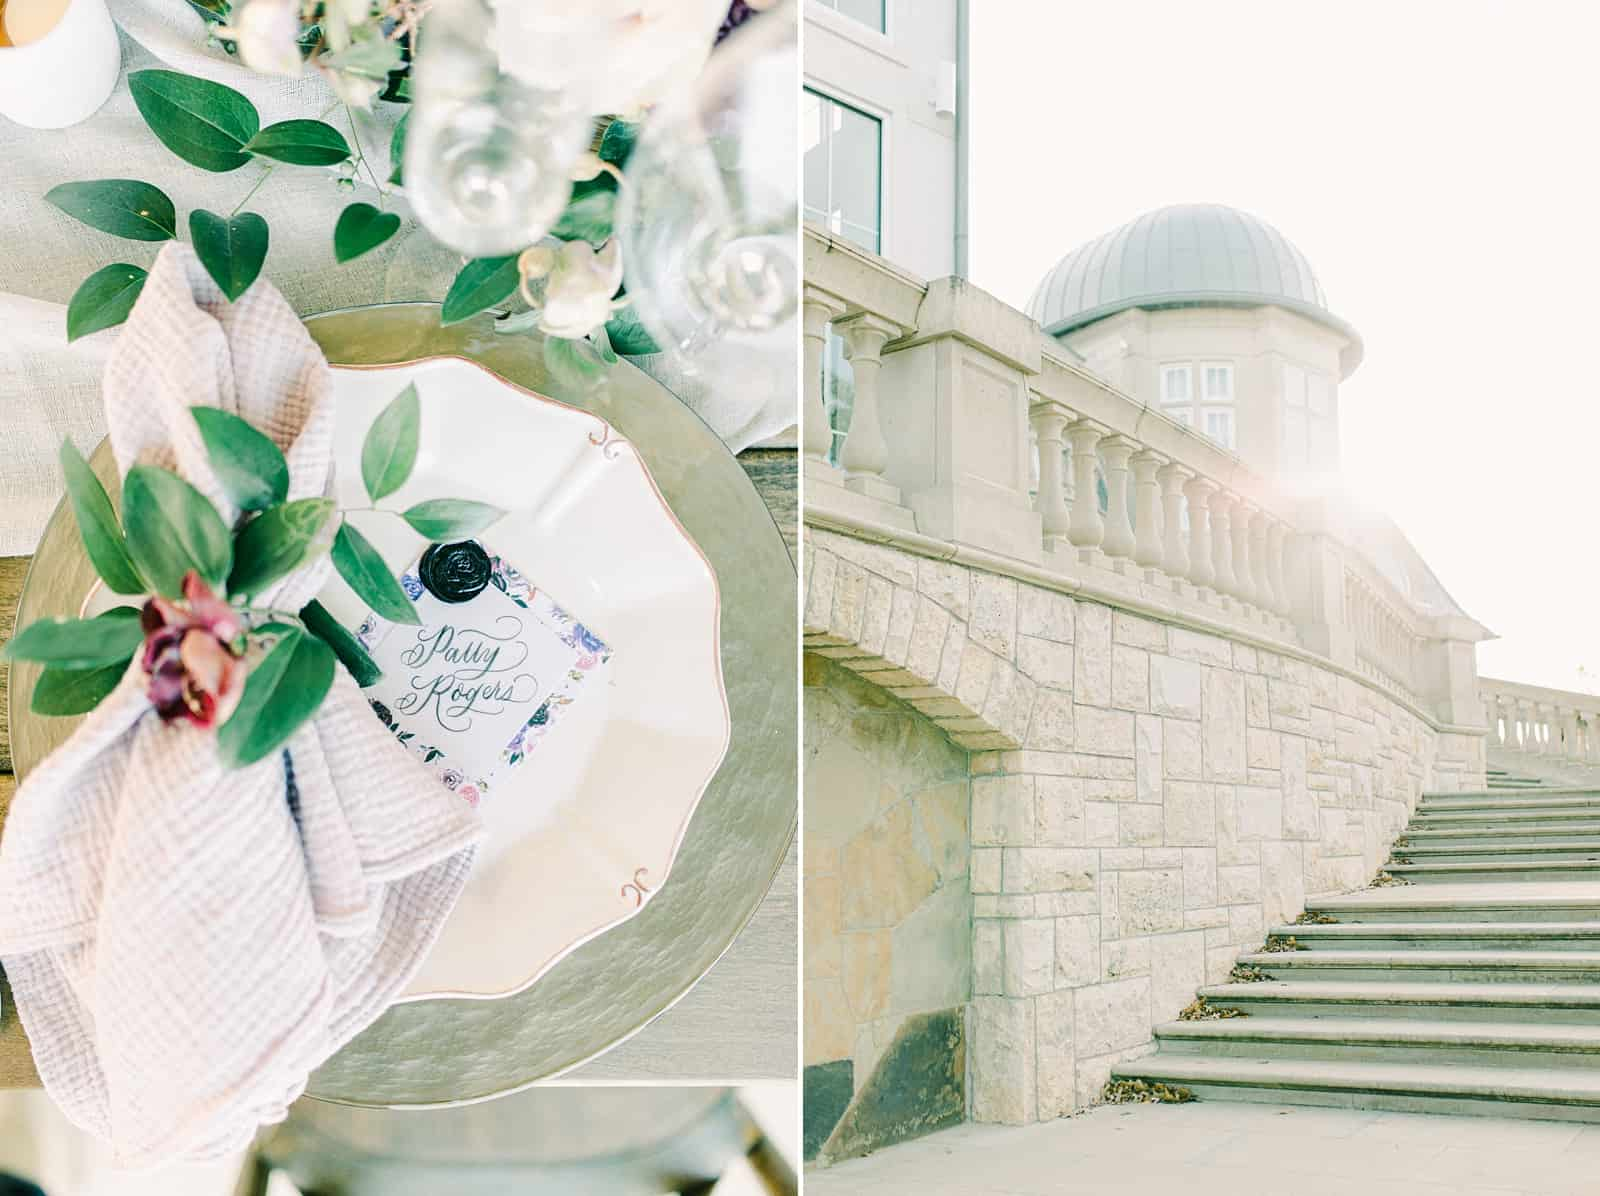 Destination wedding inspiration, calligraphy placeards with wax seal